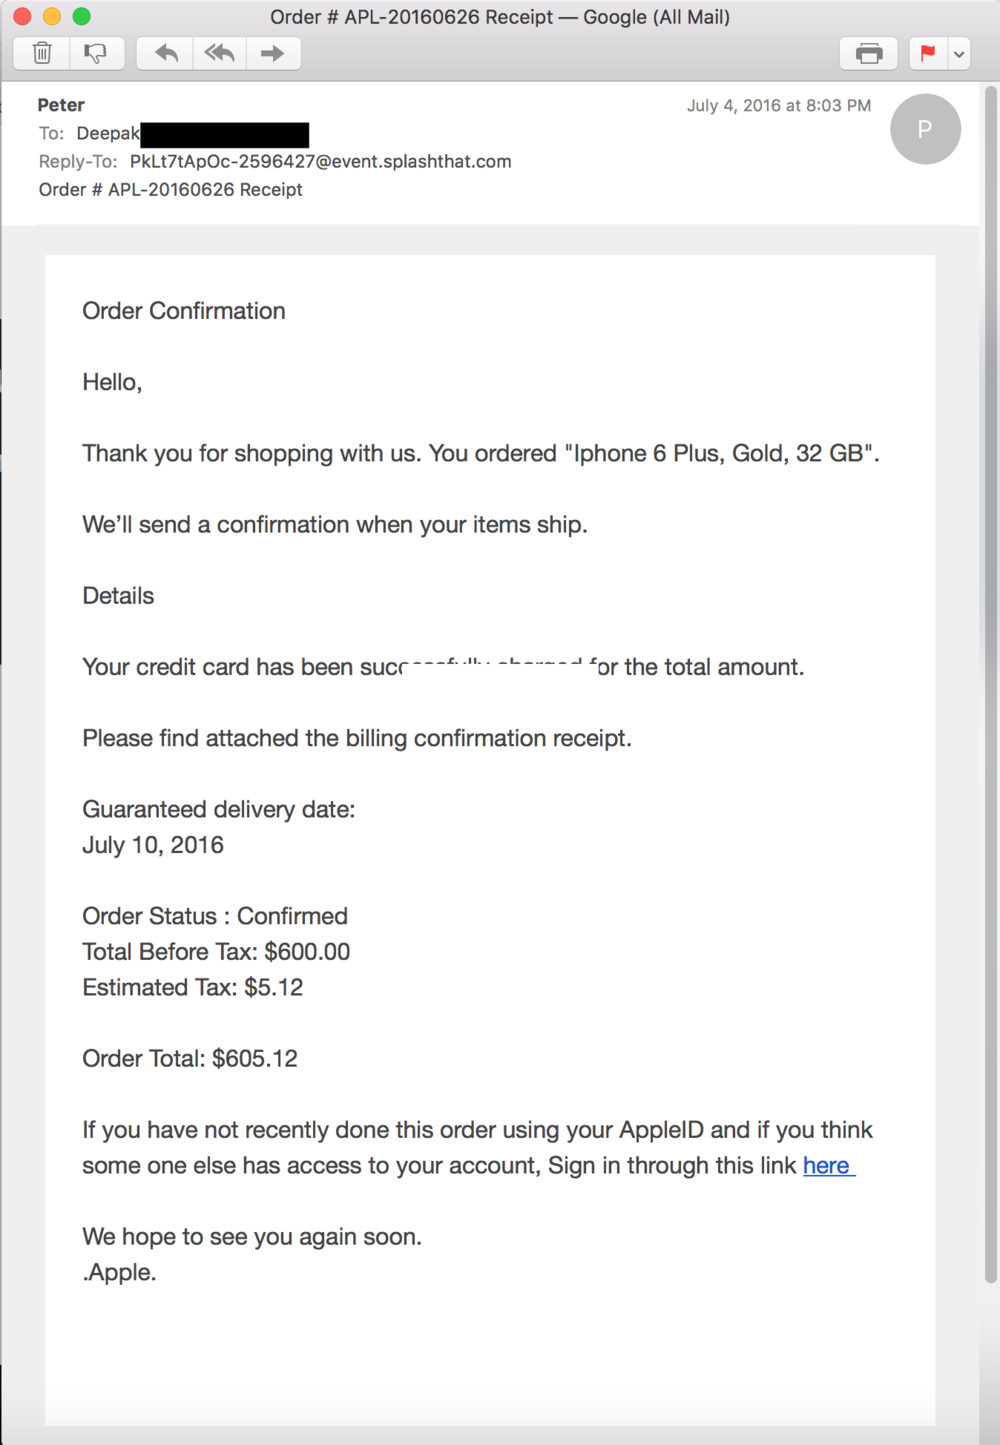 Phishing email scam targeting Apple IDs - I got an email from Peter of Apple! (Source: Apple.com)